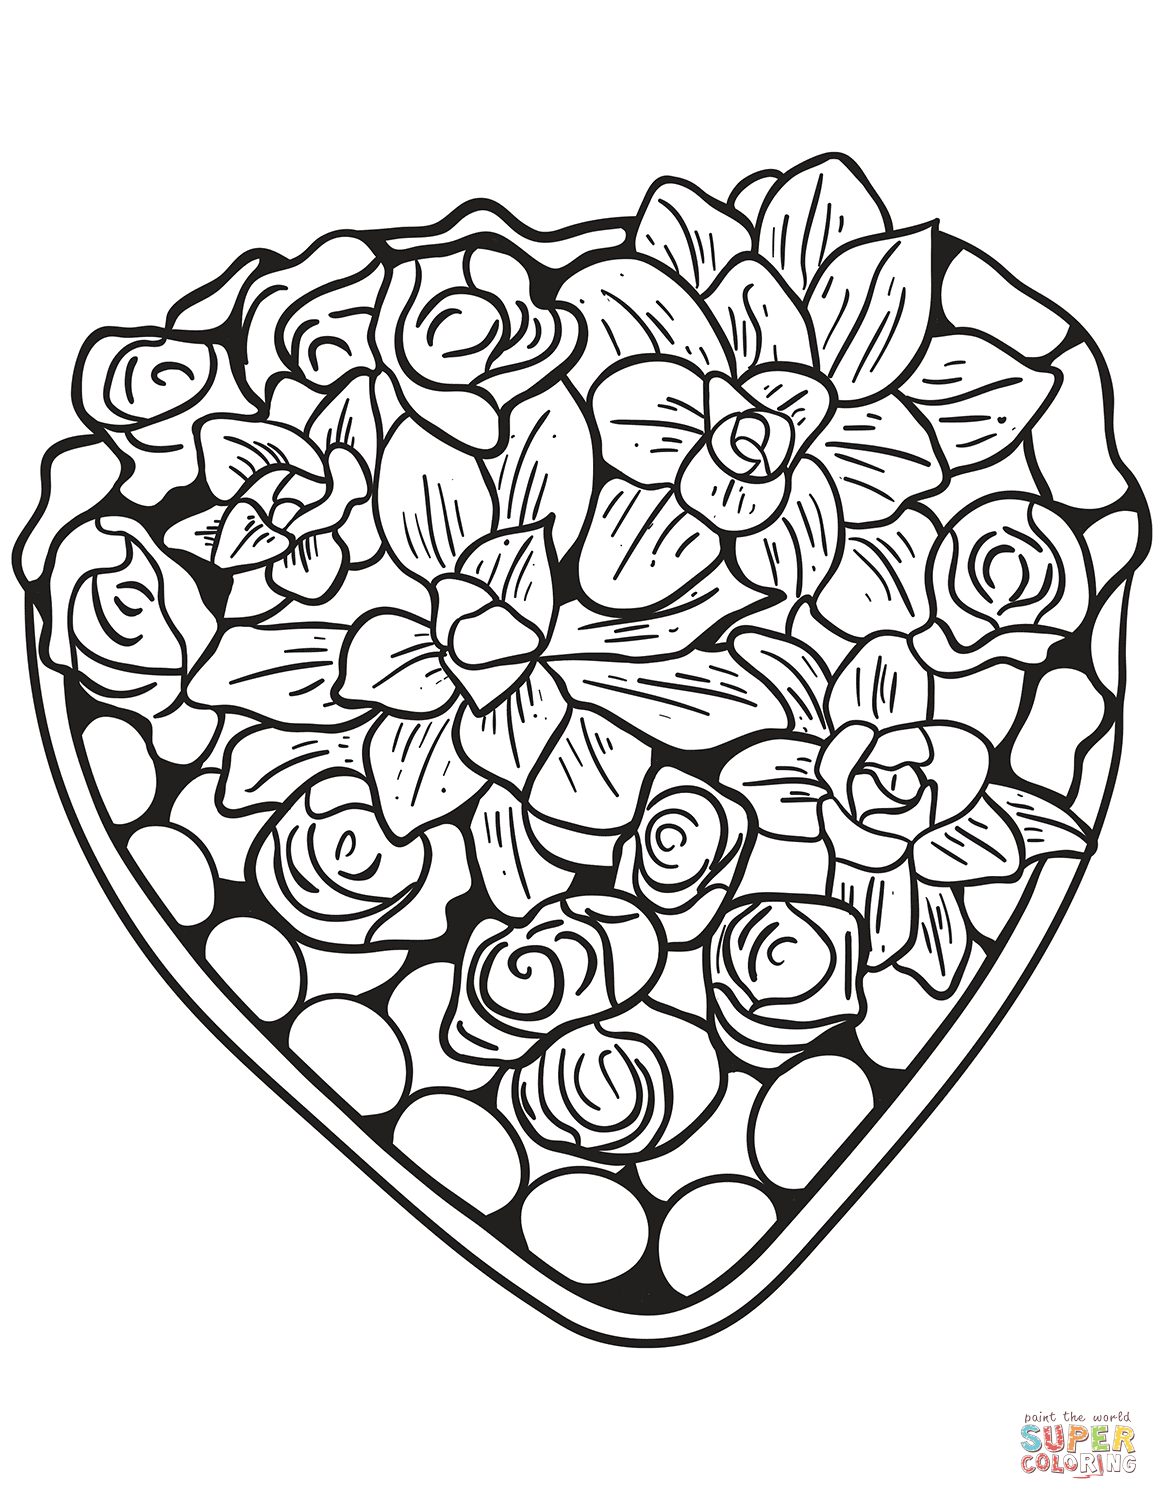 Free Coloring Pages Download Heart Made Of Flowers Page Printable